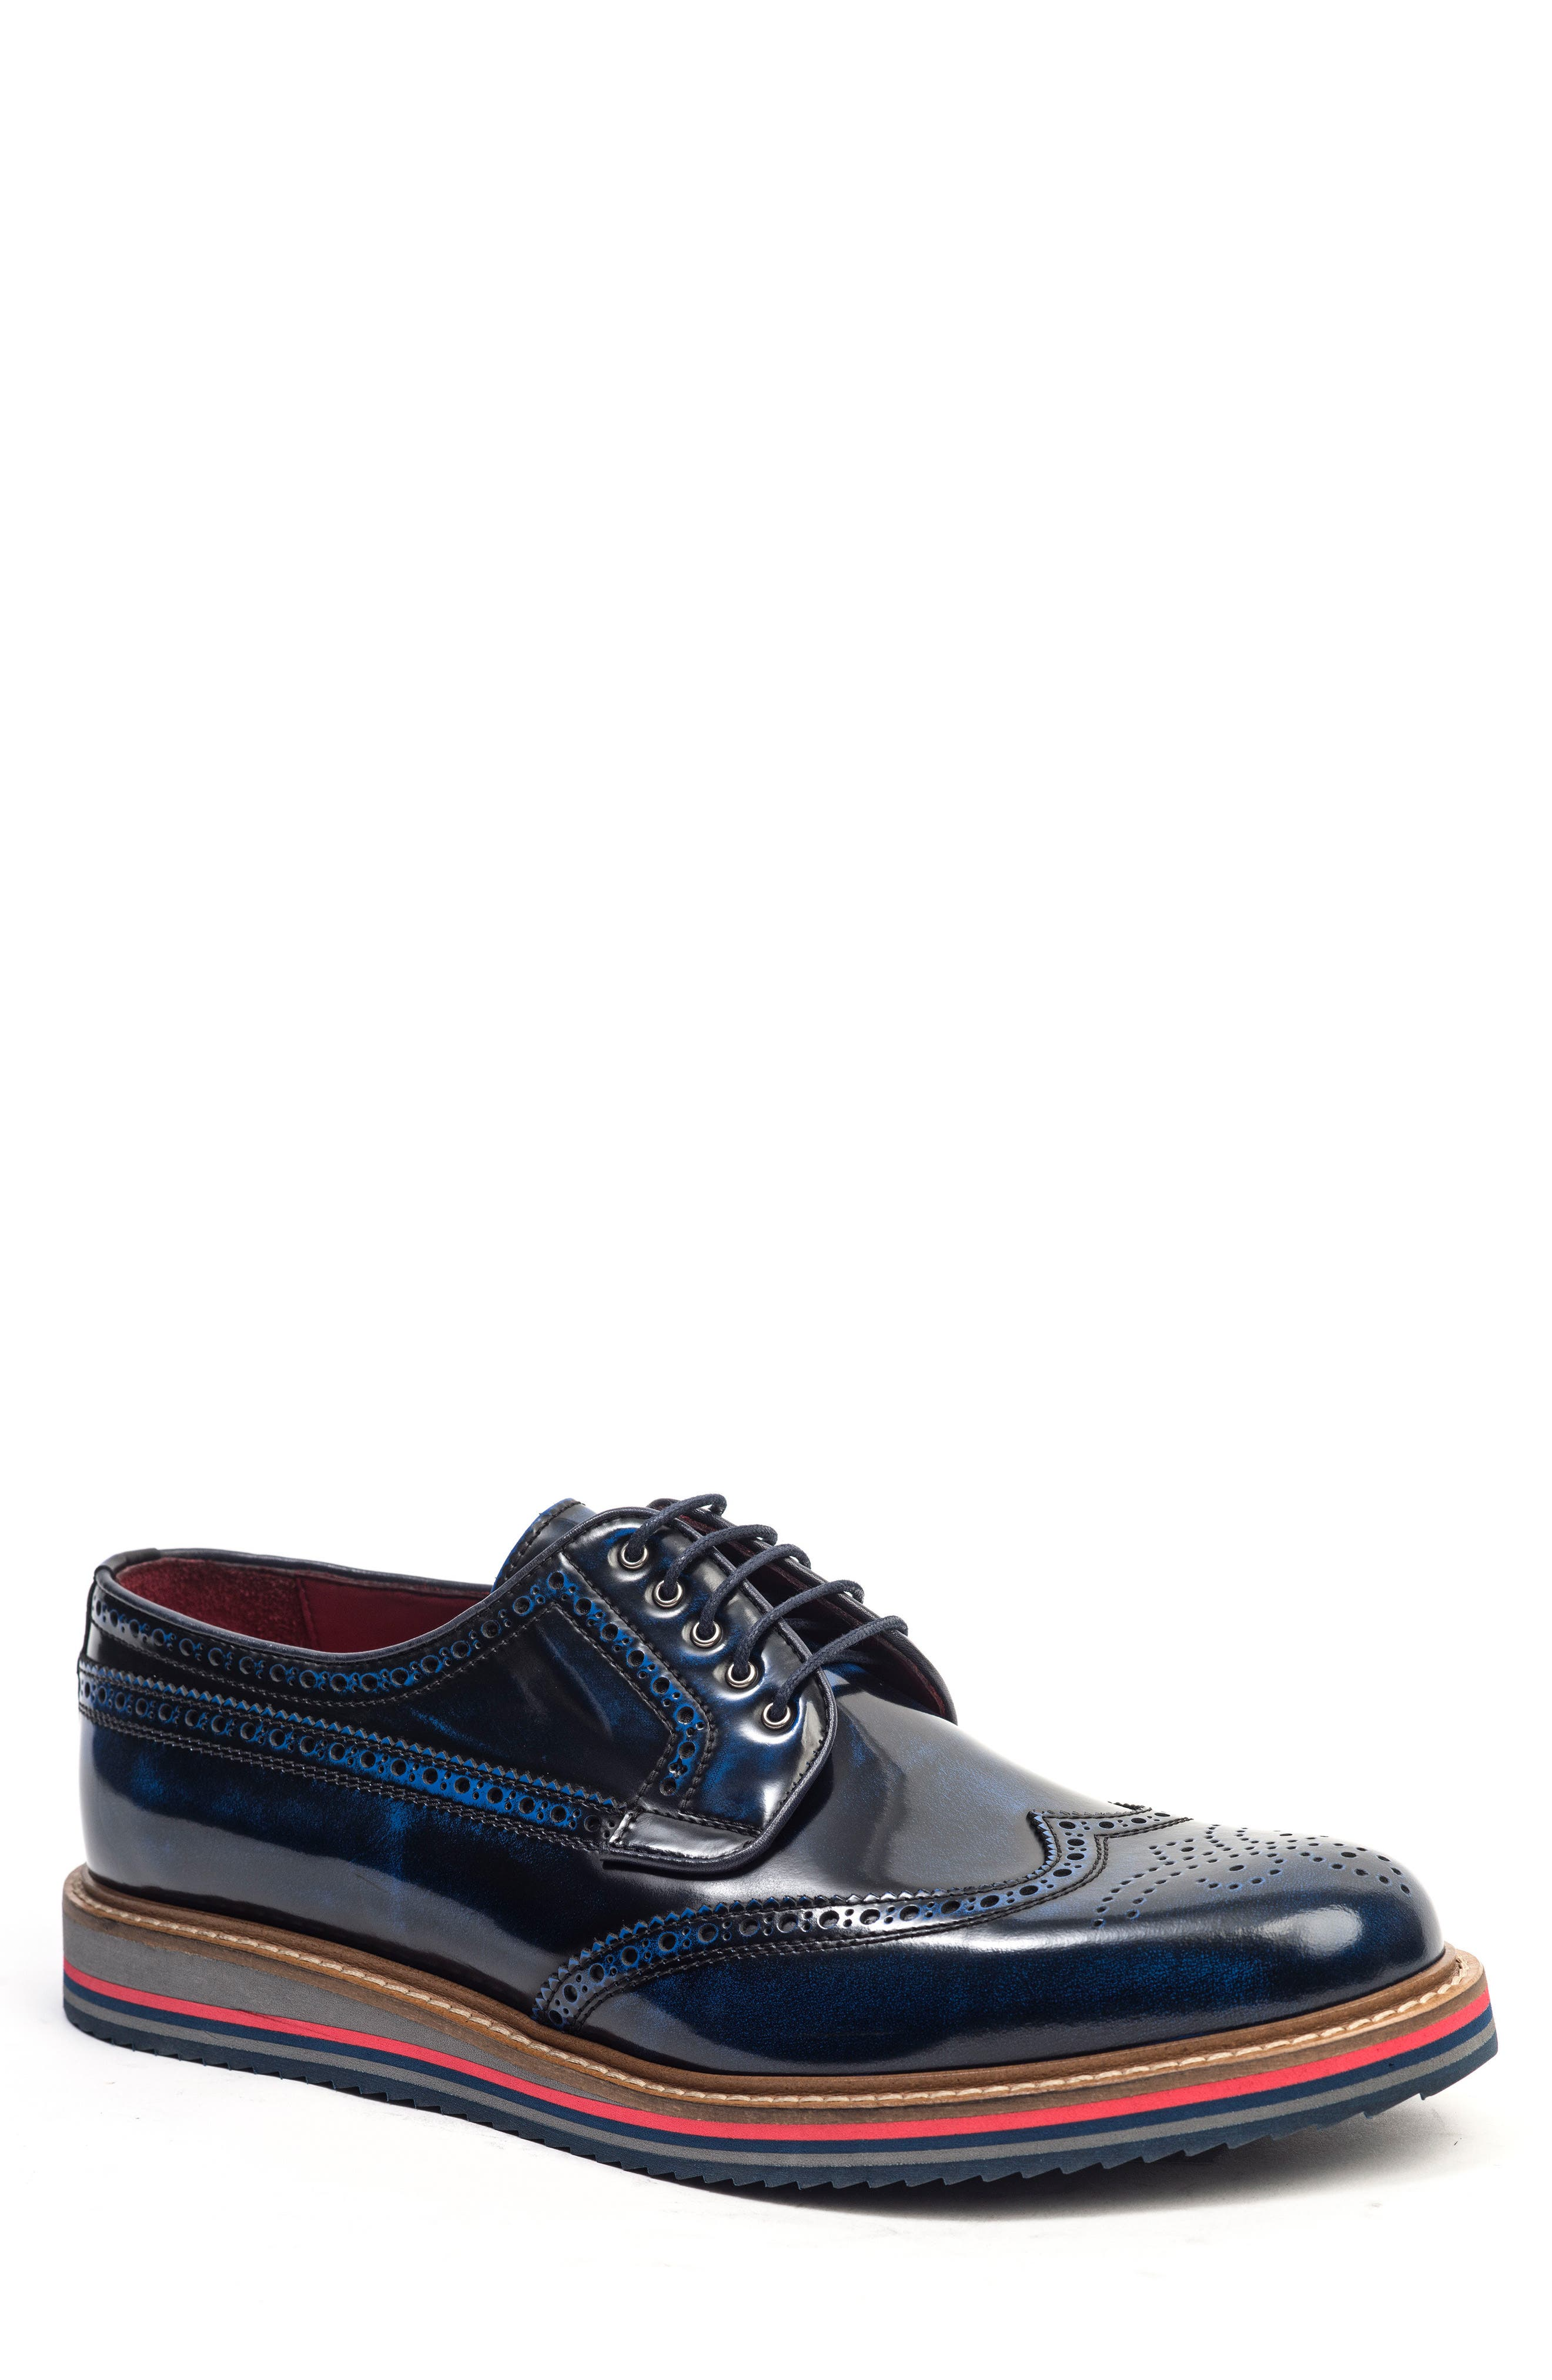 Main Image - Jared Lang Doc Sandwich Sole Wingtip Oxford (Men)